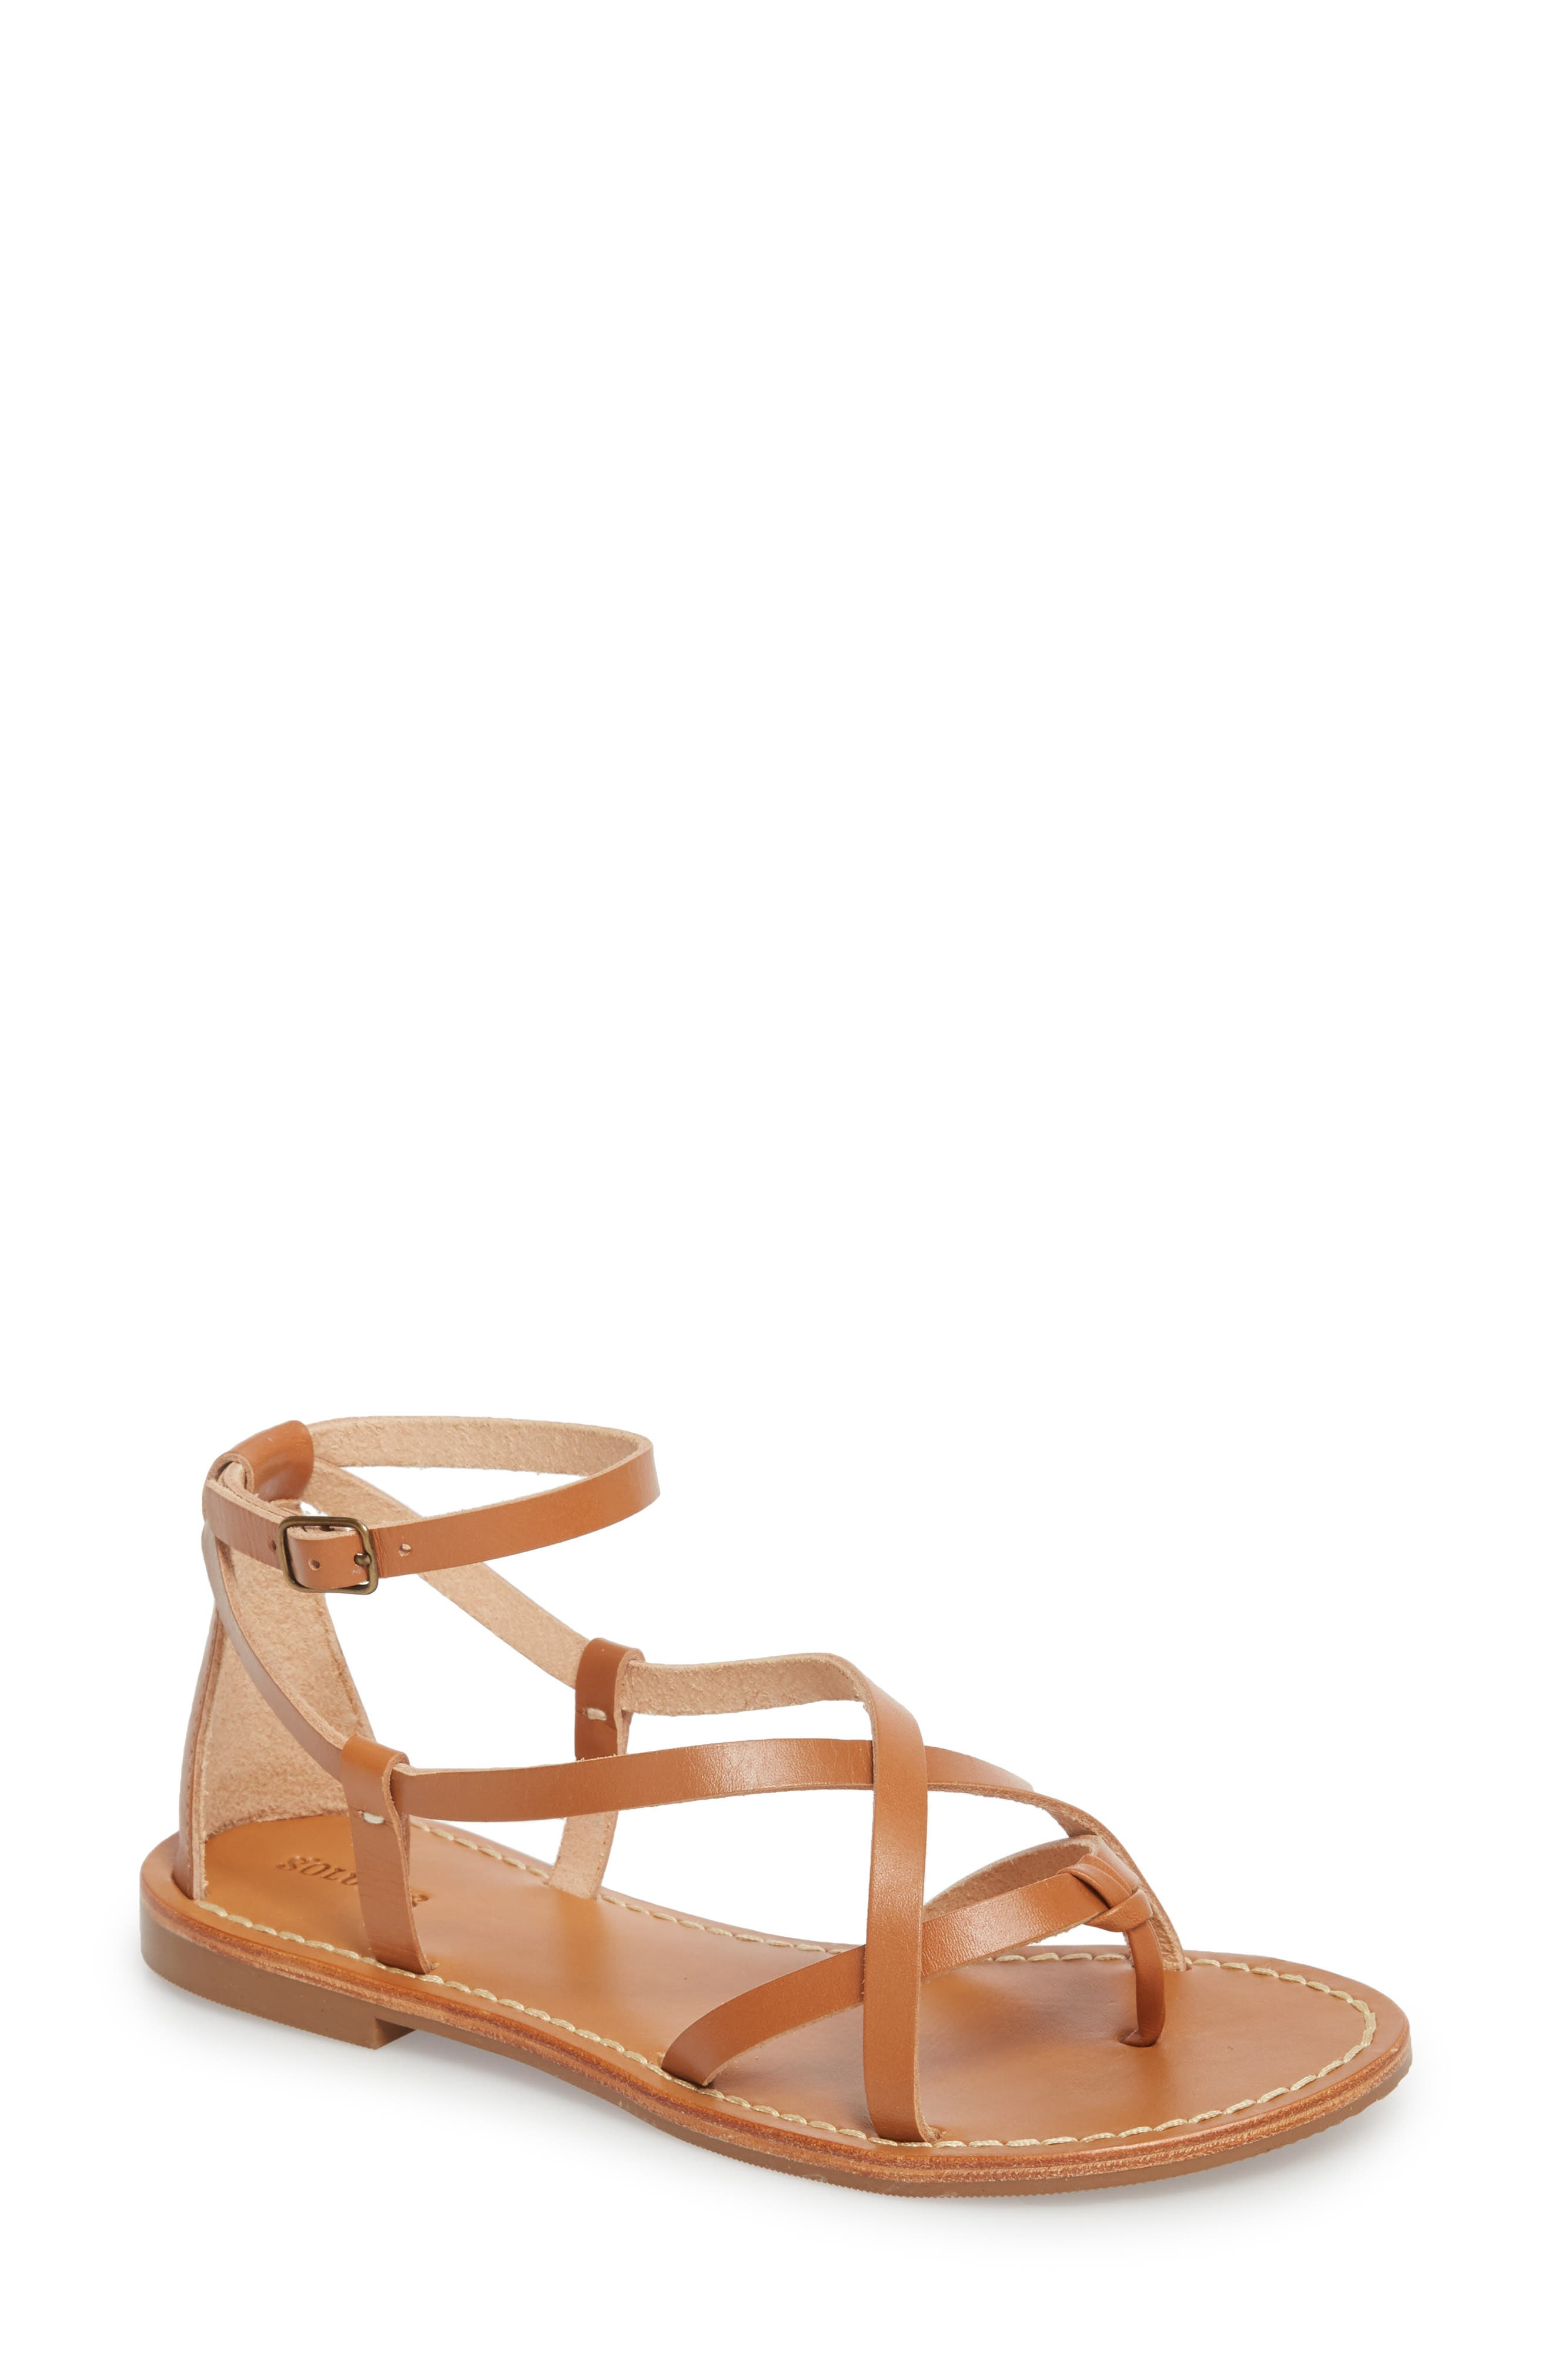 Strappy Sandal,                             Main thumbnail 1, color,                             Nude